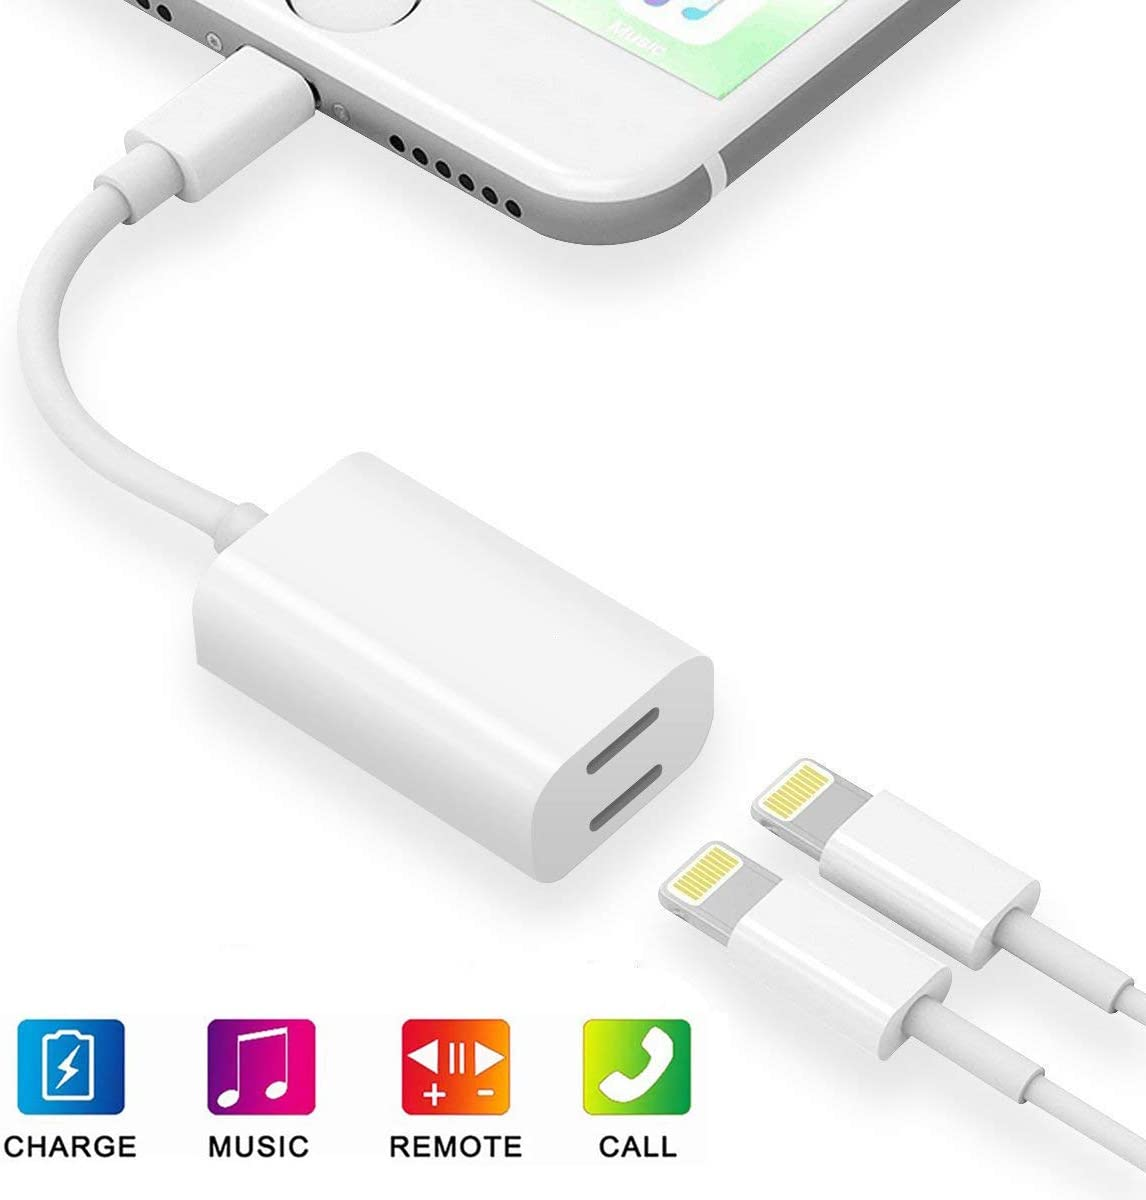 [Apple MFi Certified] Dual Lightning iPhone Splitter,2 in 1 Lightning Headphone Jack Audio + Charge Cable Compatible for iPhone 11/11 Pro/XS/XR/X 8 7, iPad,Sync Data + Music Control,Support iOS 13